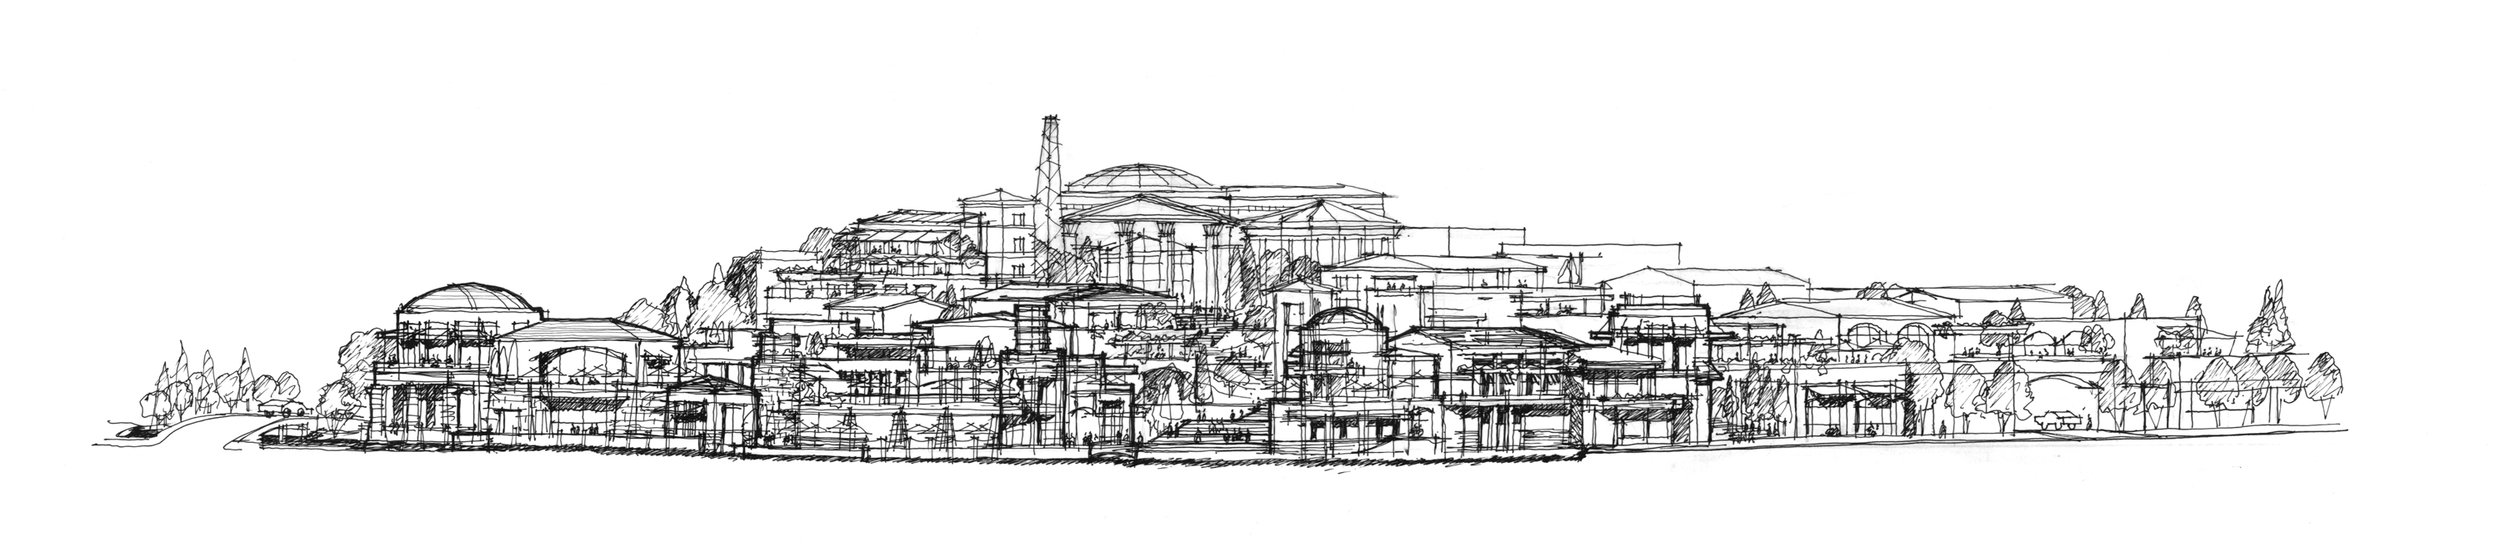 Architectural Sketch of Luxehills